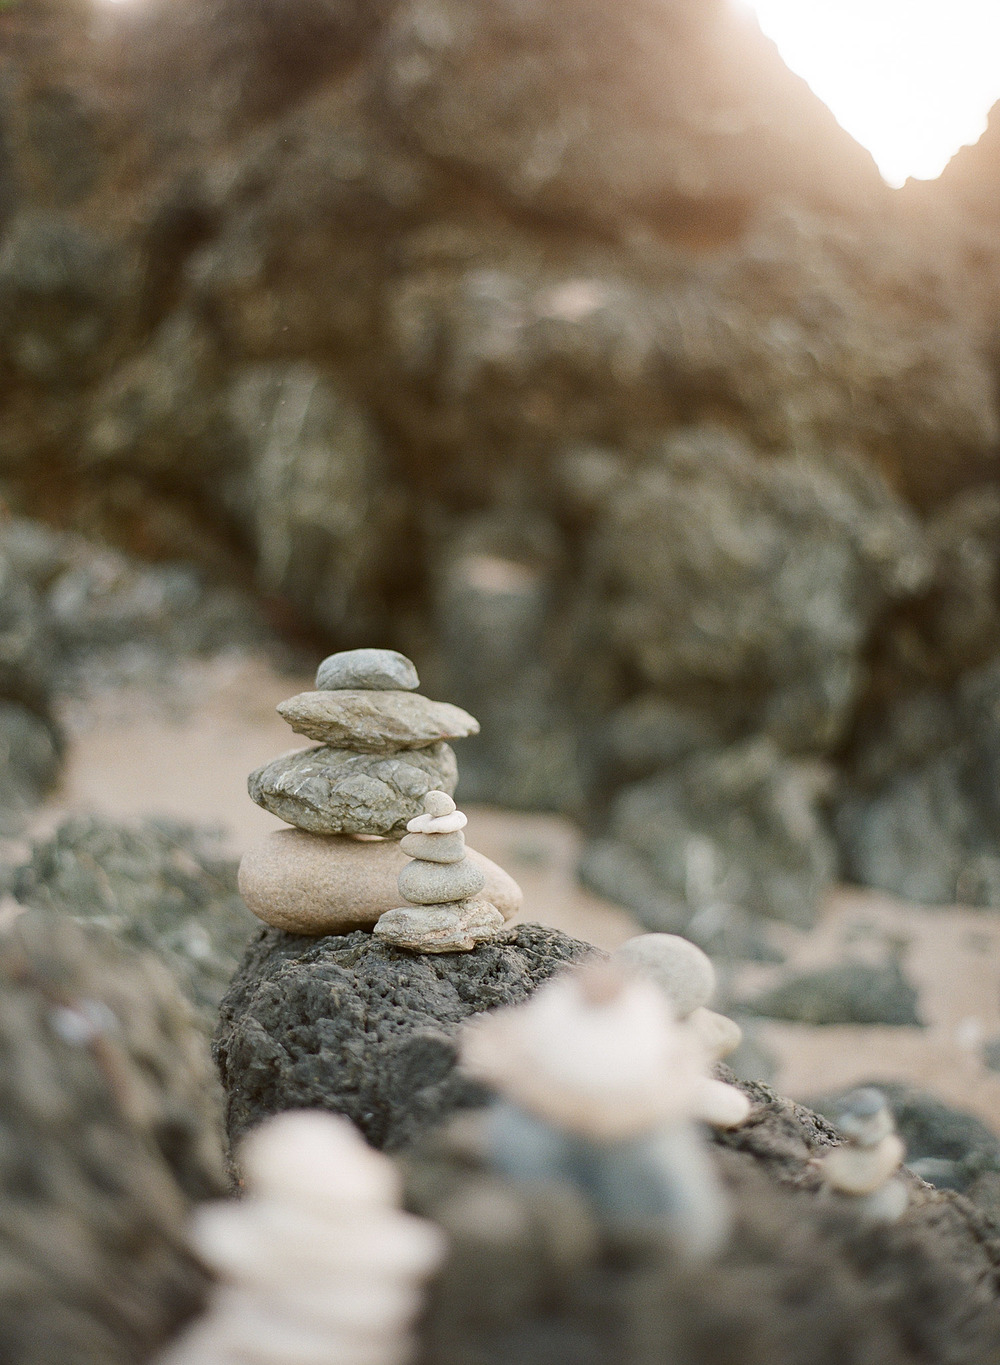 stones are stacked on the beach at Vieques Island Puerto rico at this modern destination wedding at the W hotel on Vieques island puerto rico- while Destination wedding photographer Lexia Frank photographs this wedding on film